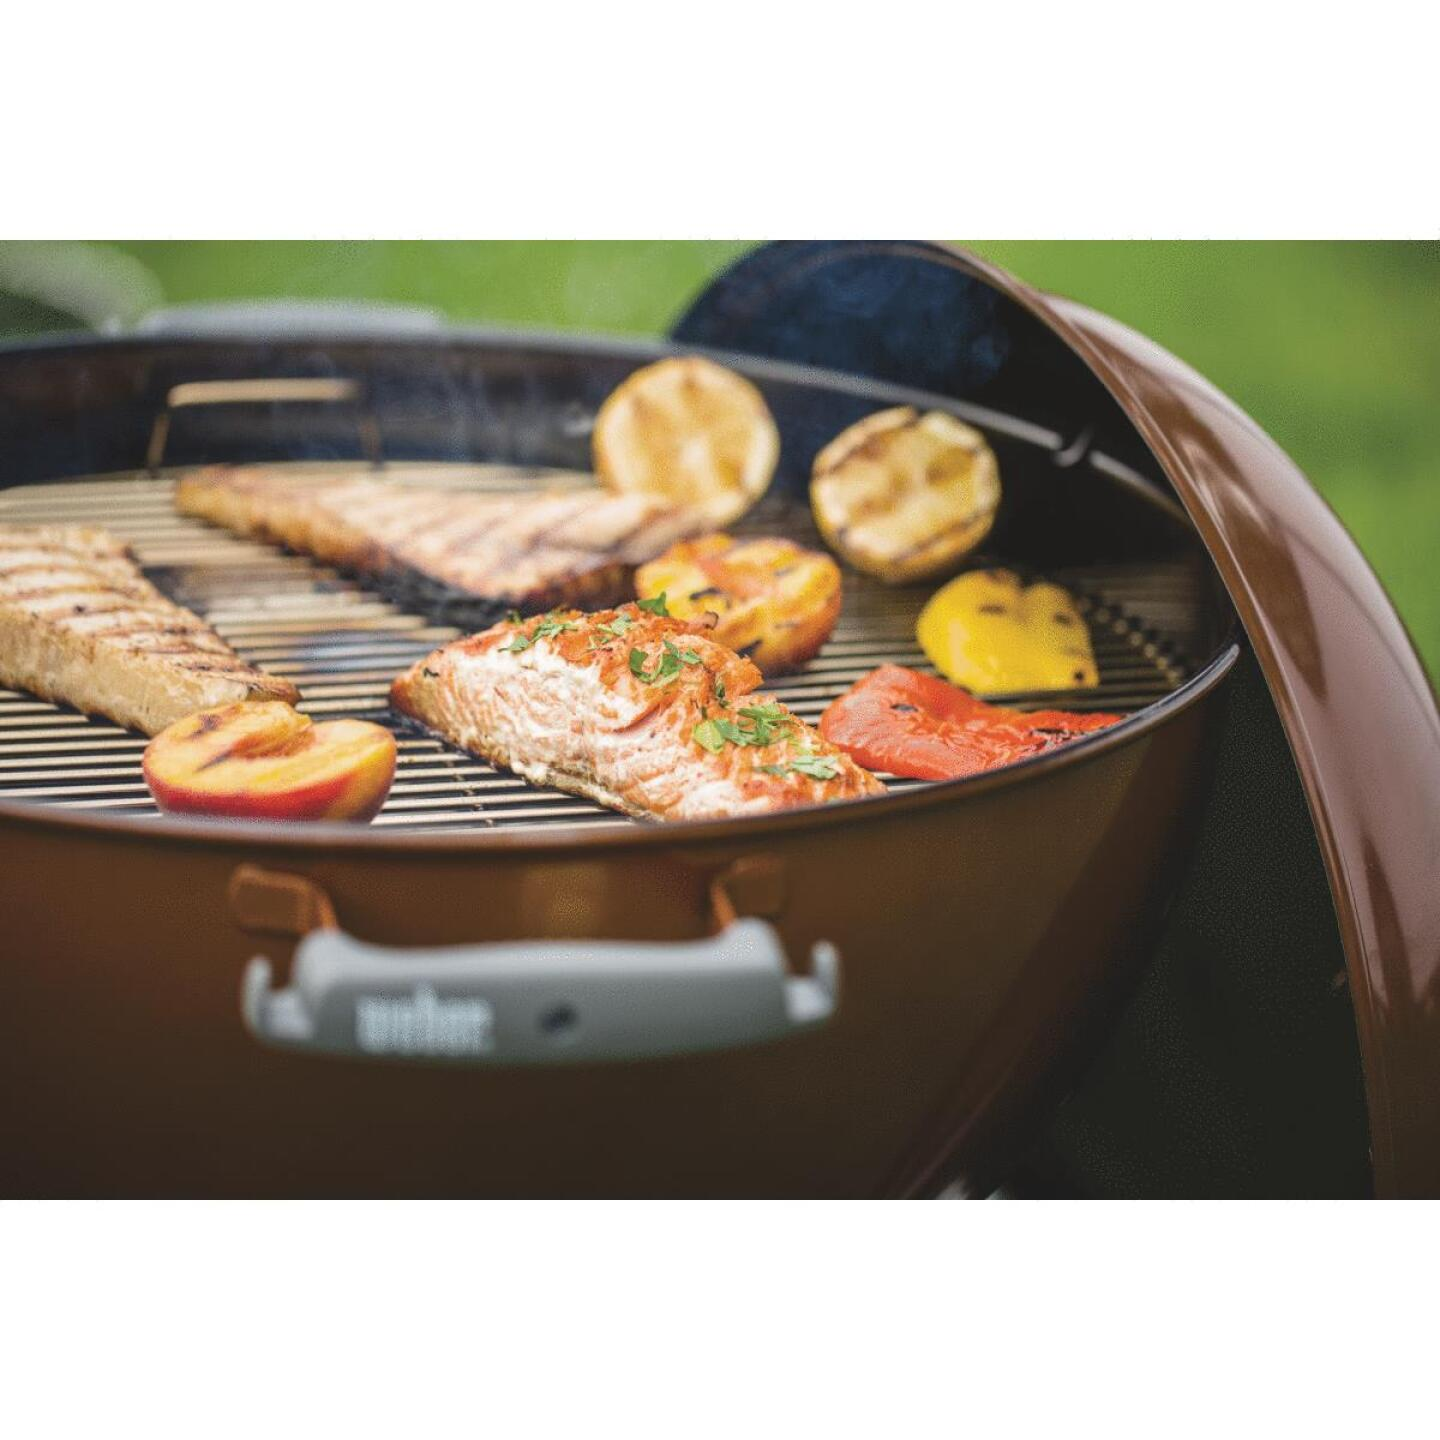 Weber Original Kettle 22 In. Dia. Copper Premium Charcoal Grill Image 2